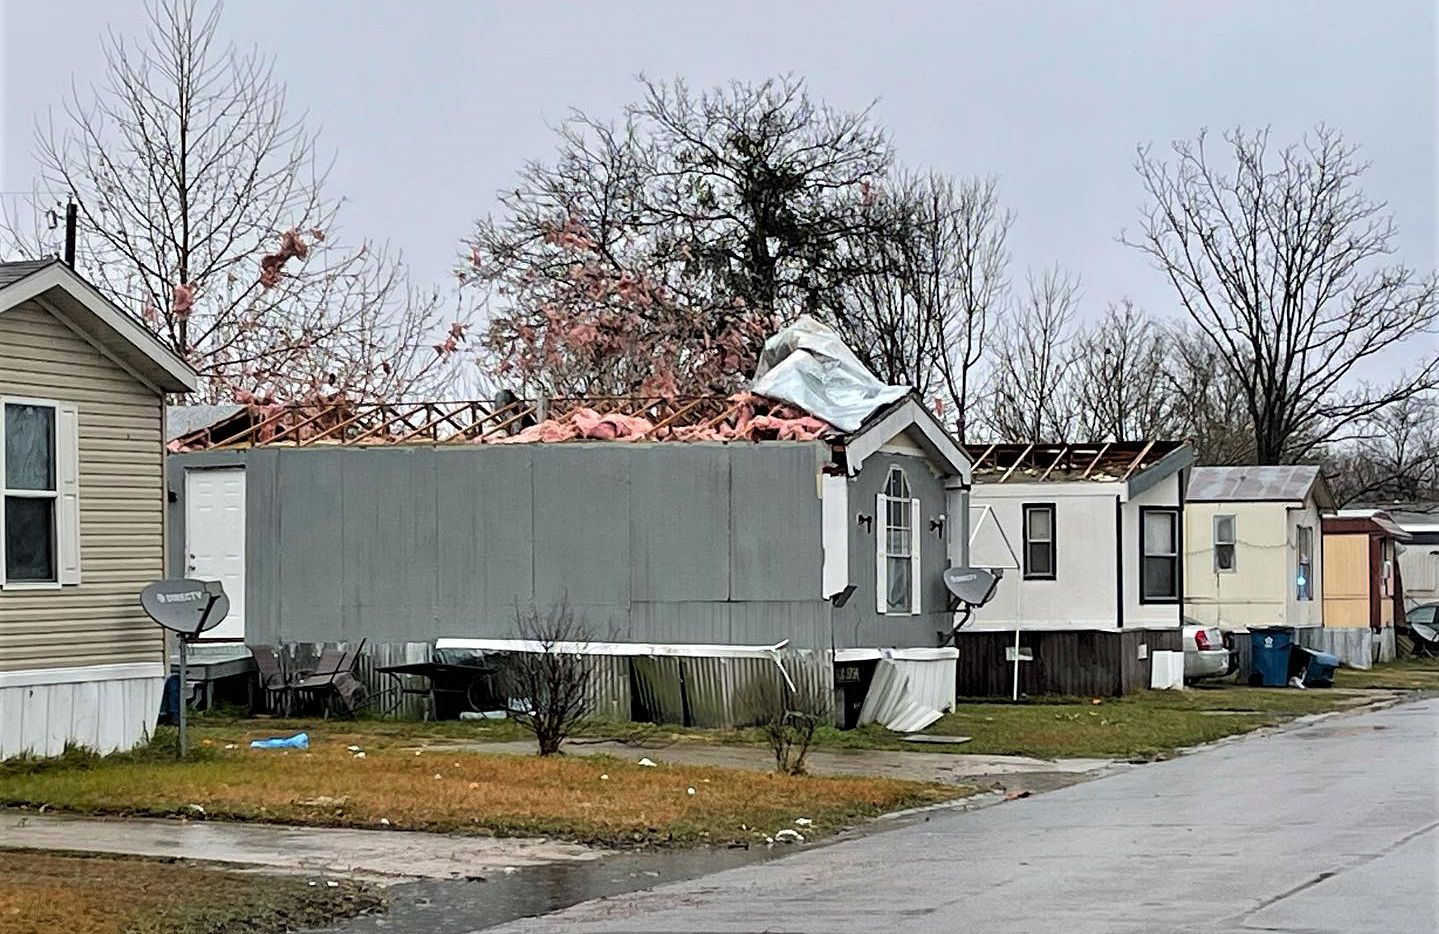 A handful of mobile homes were damaged by Wednesday morning's tornado in Corsicana, authorities said.